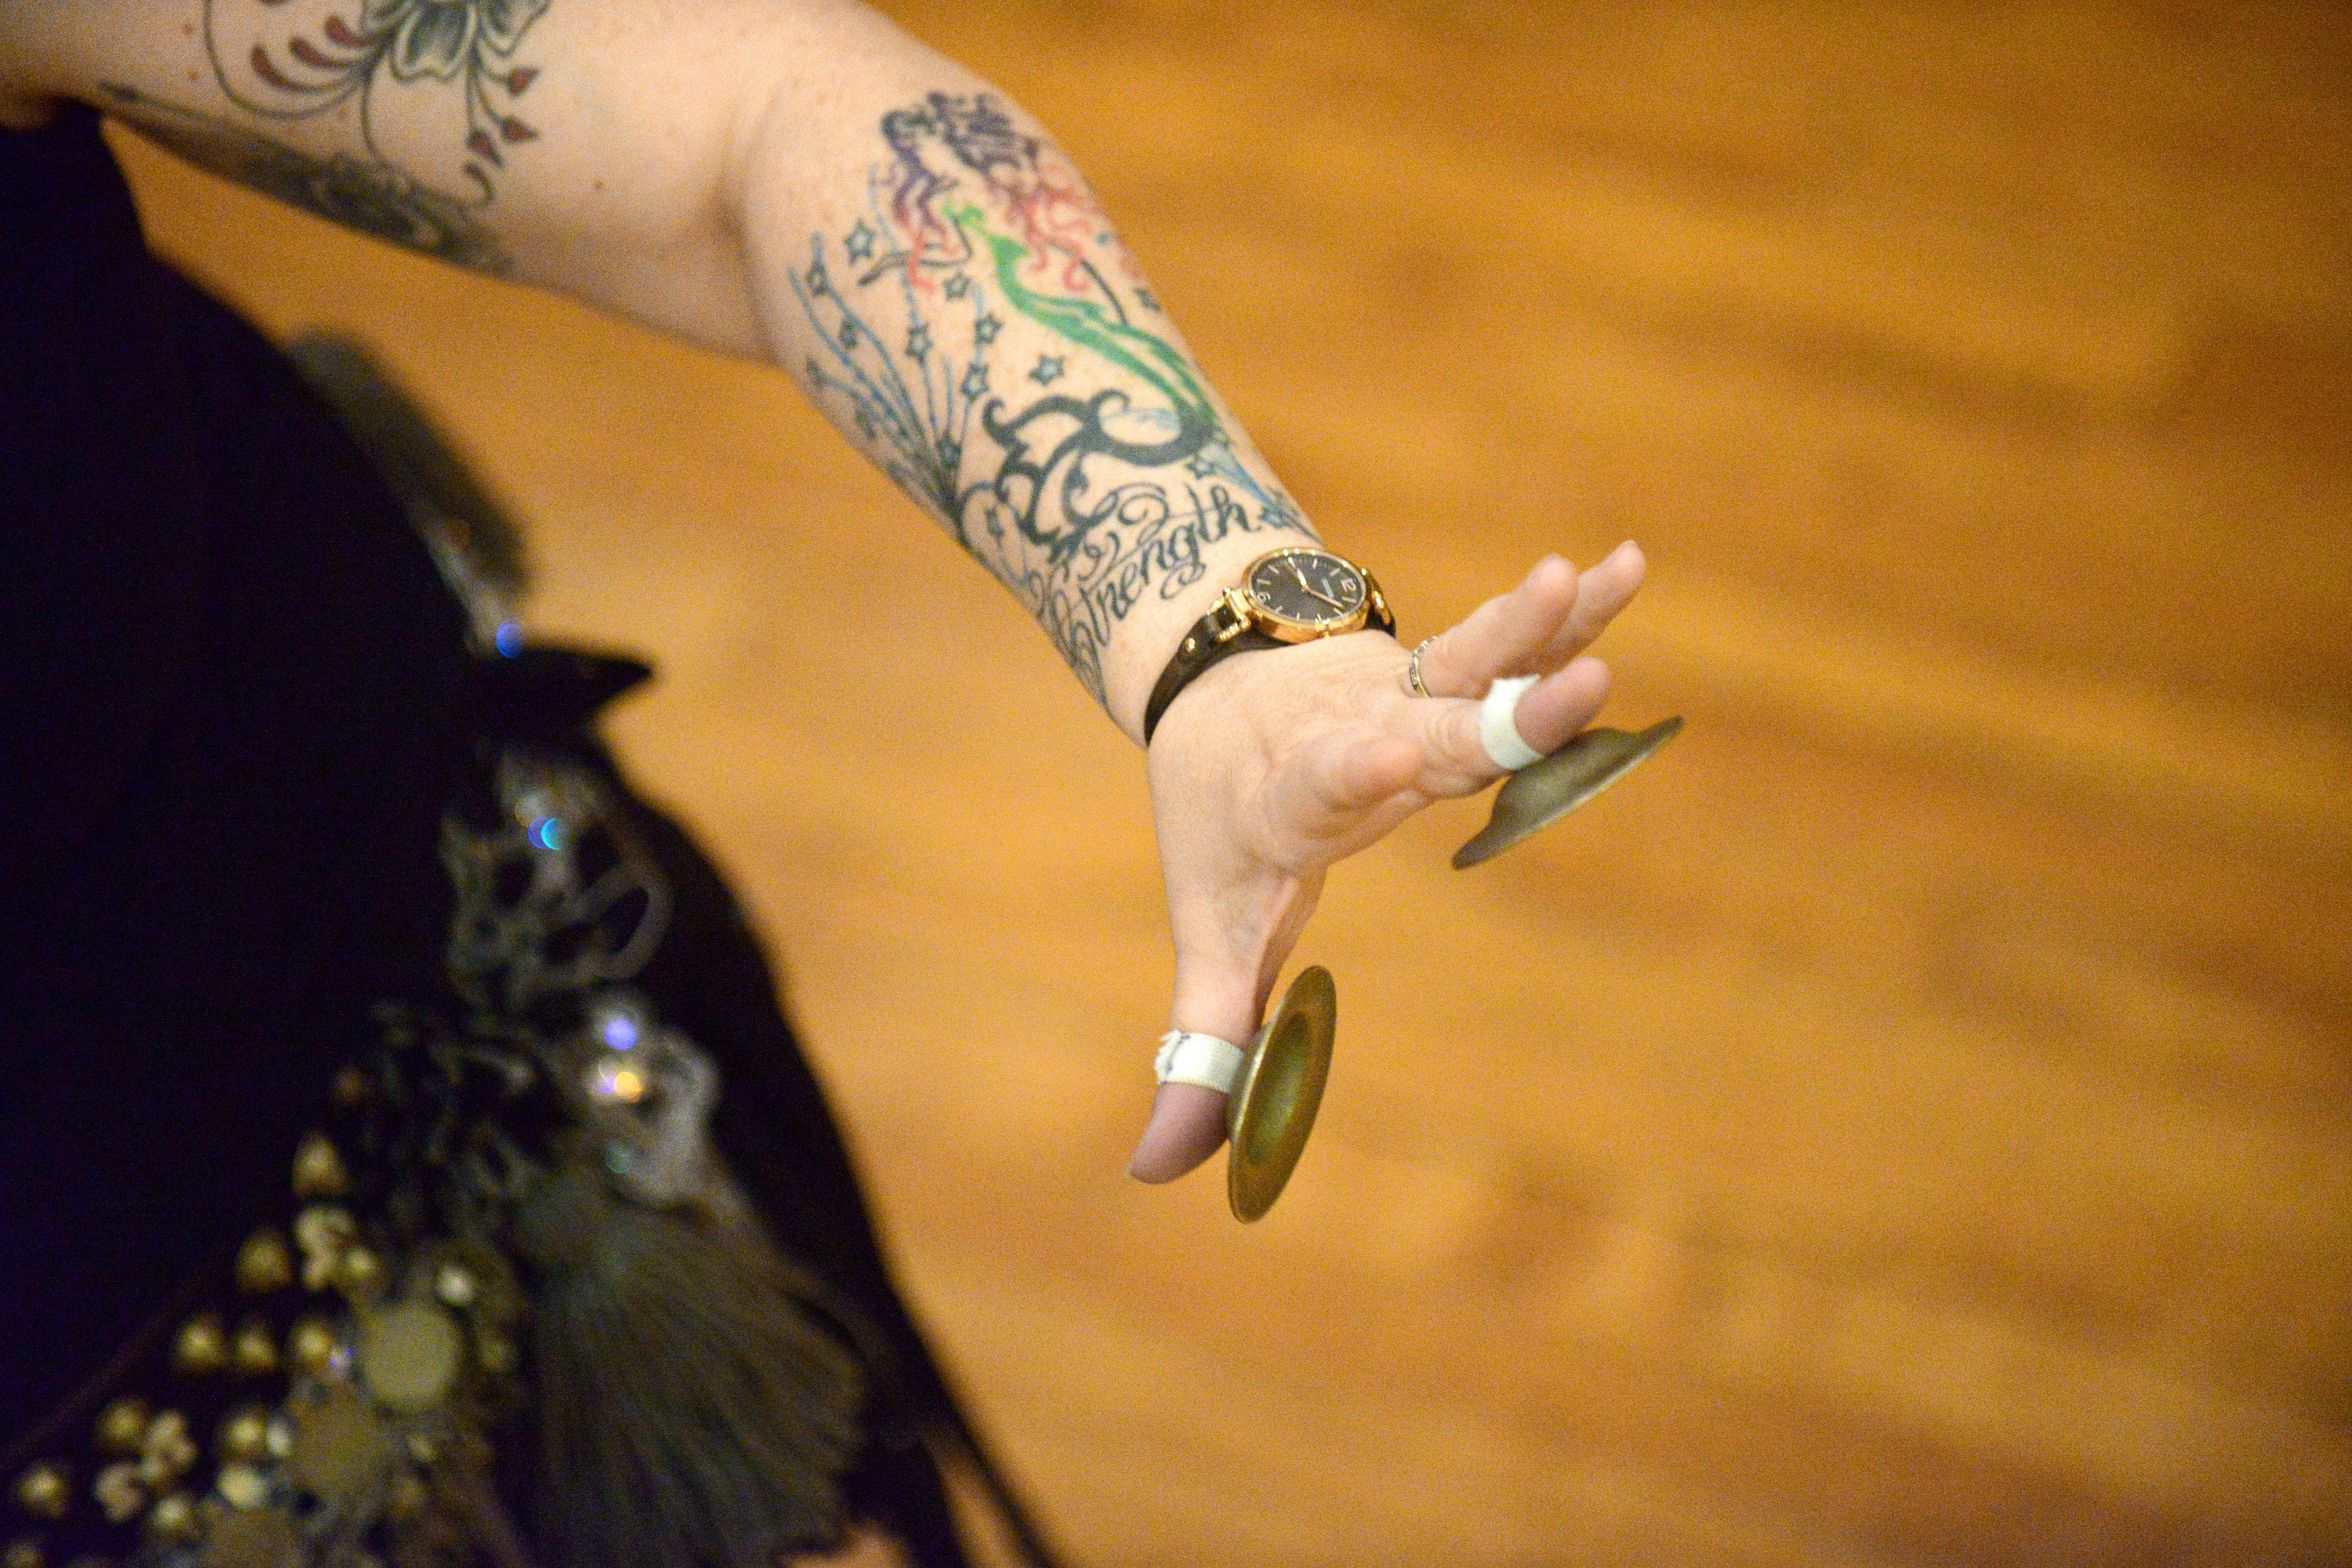 Zills, small metallic cymbals attached to the fingers, are used frequently in belly dance.